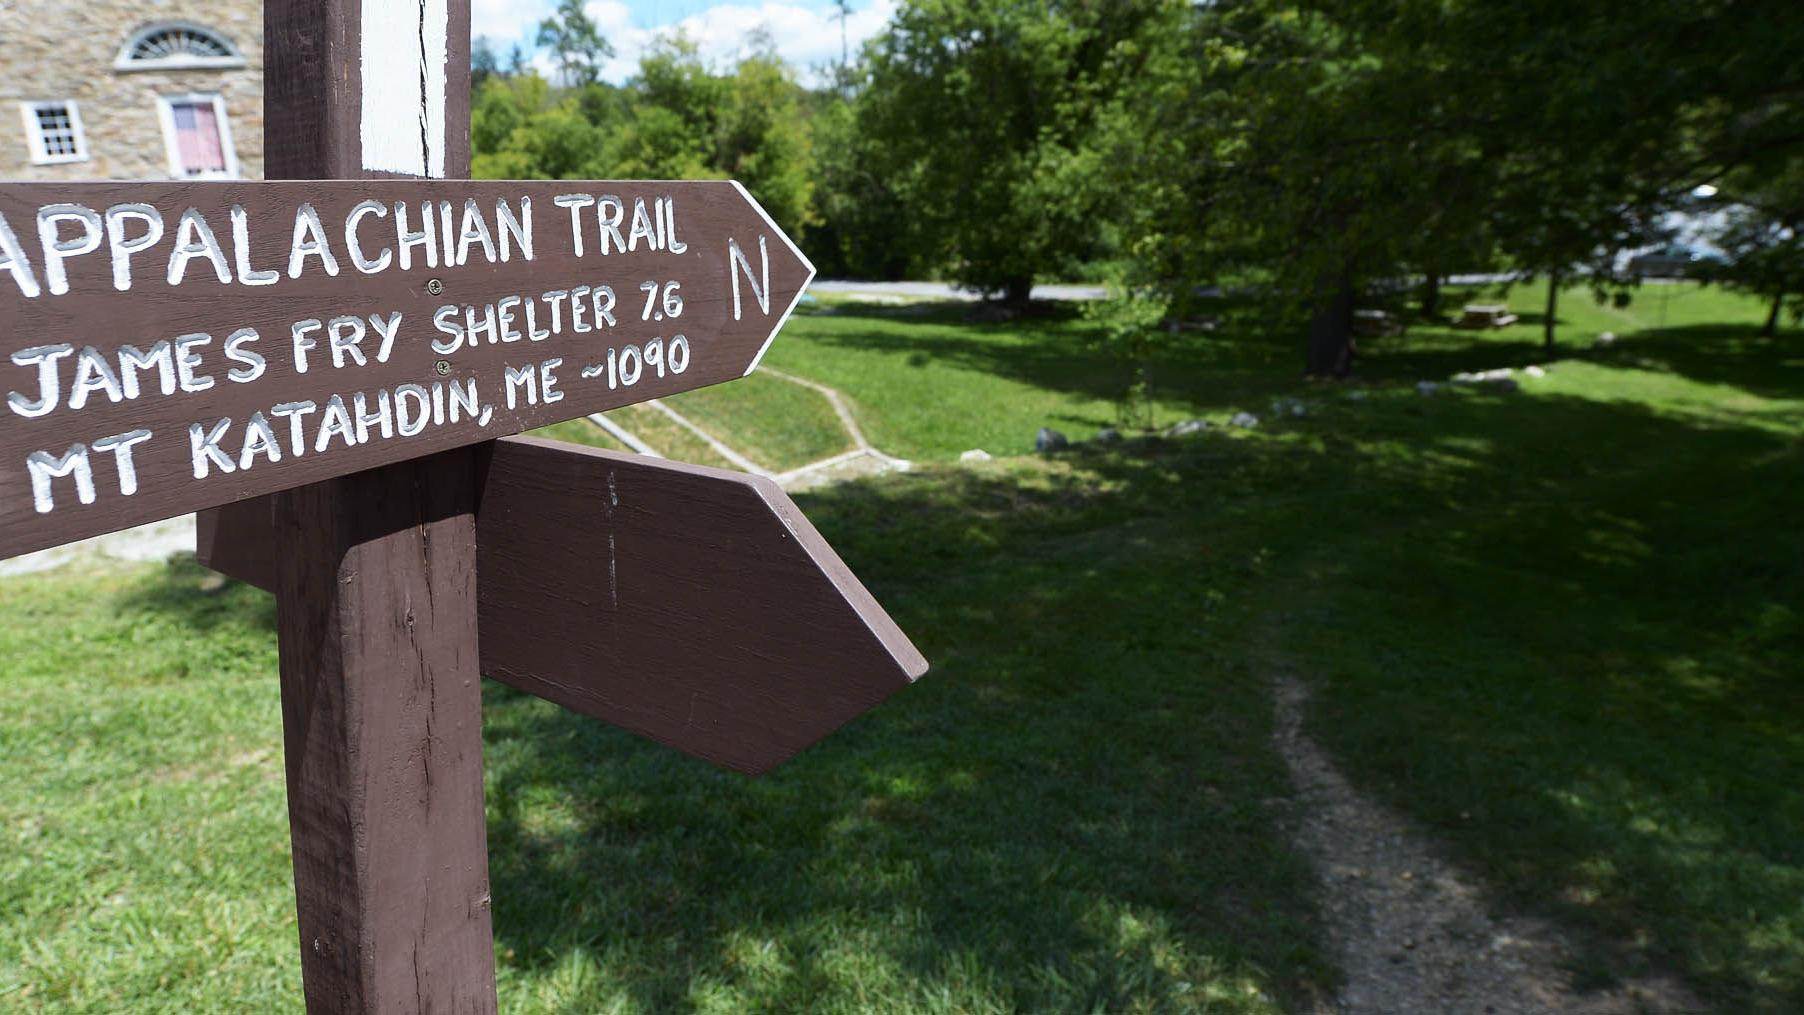 Shutdown: Gettysburg National Military Park, Appalachian Trail open with limited service during shutdown